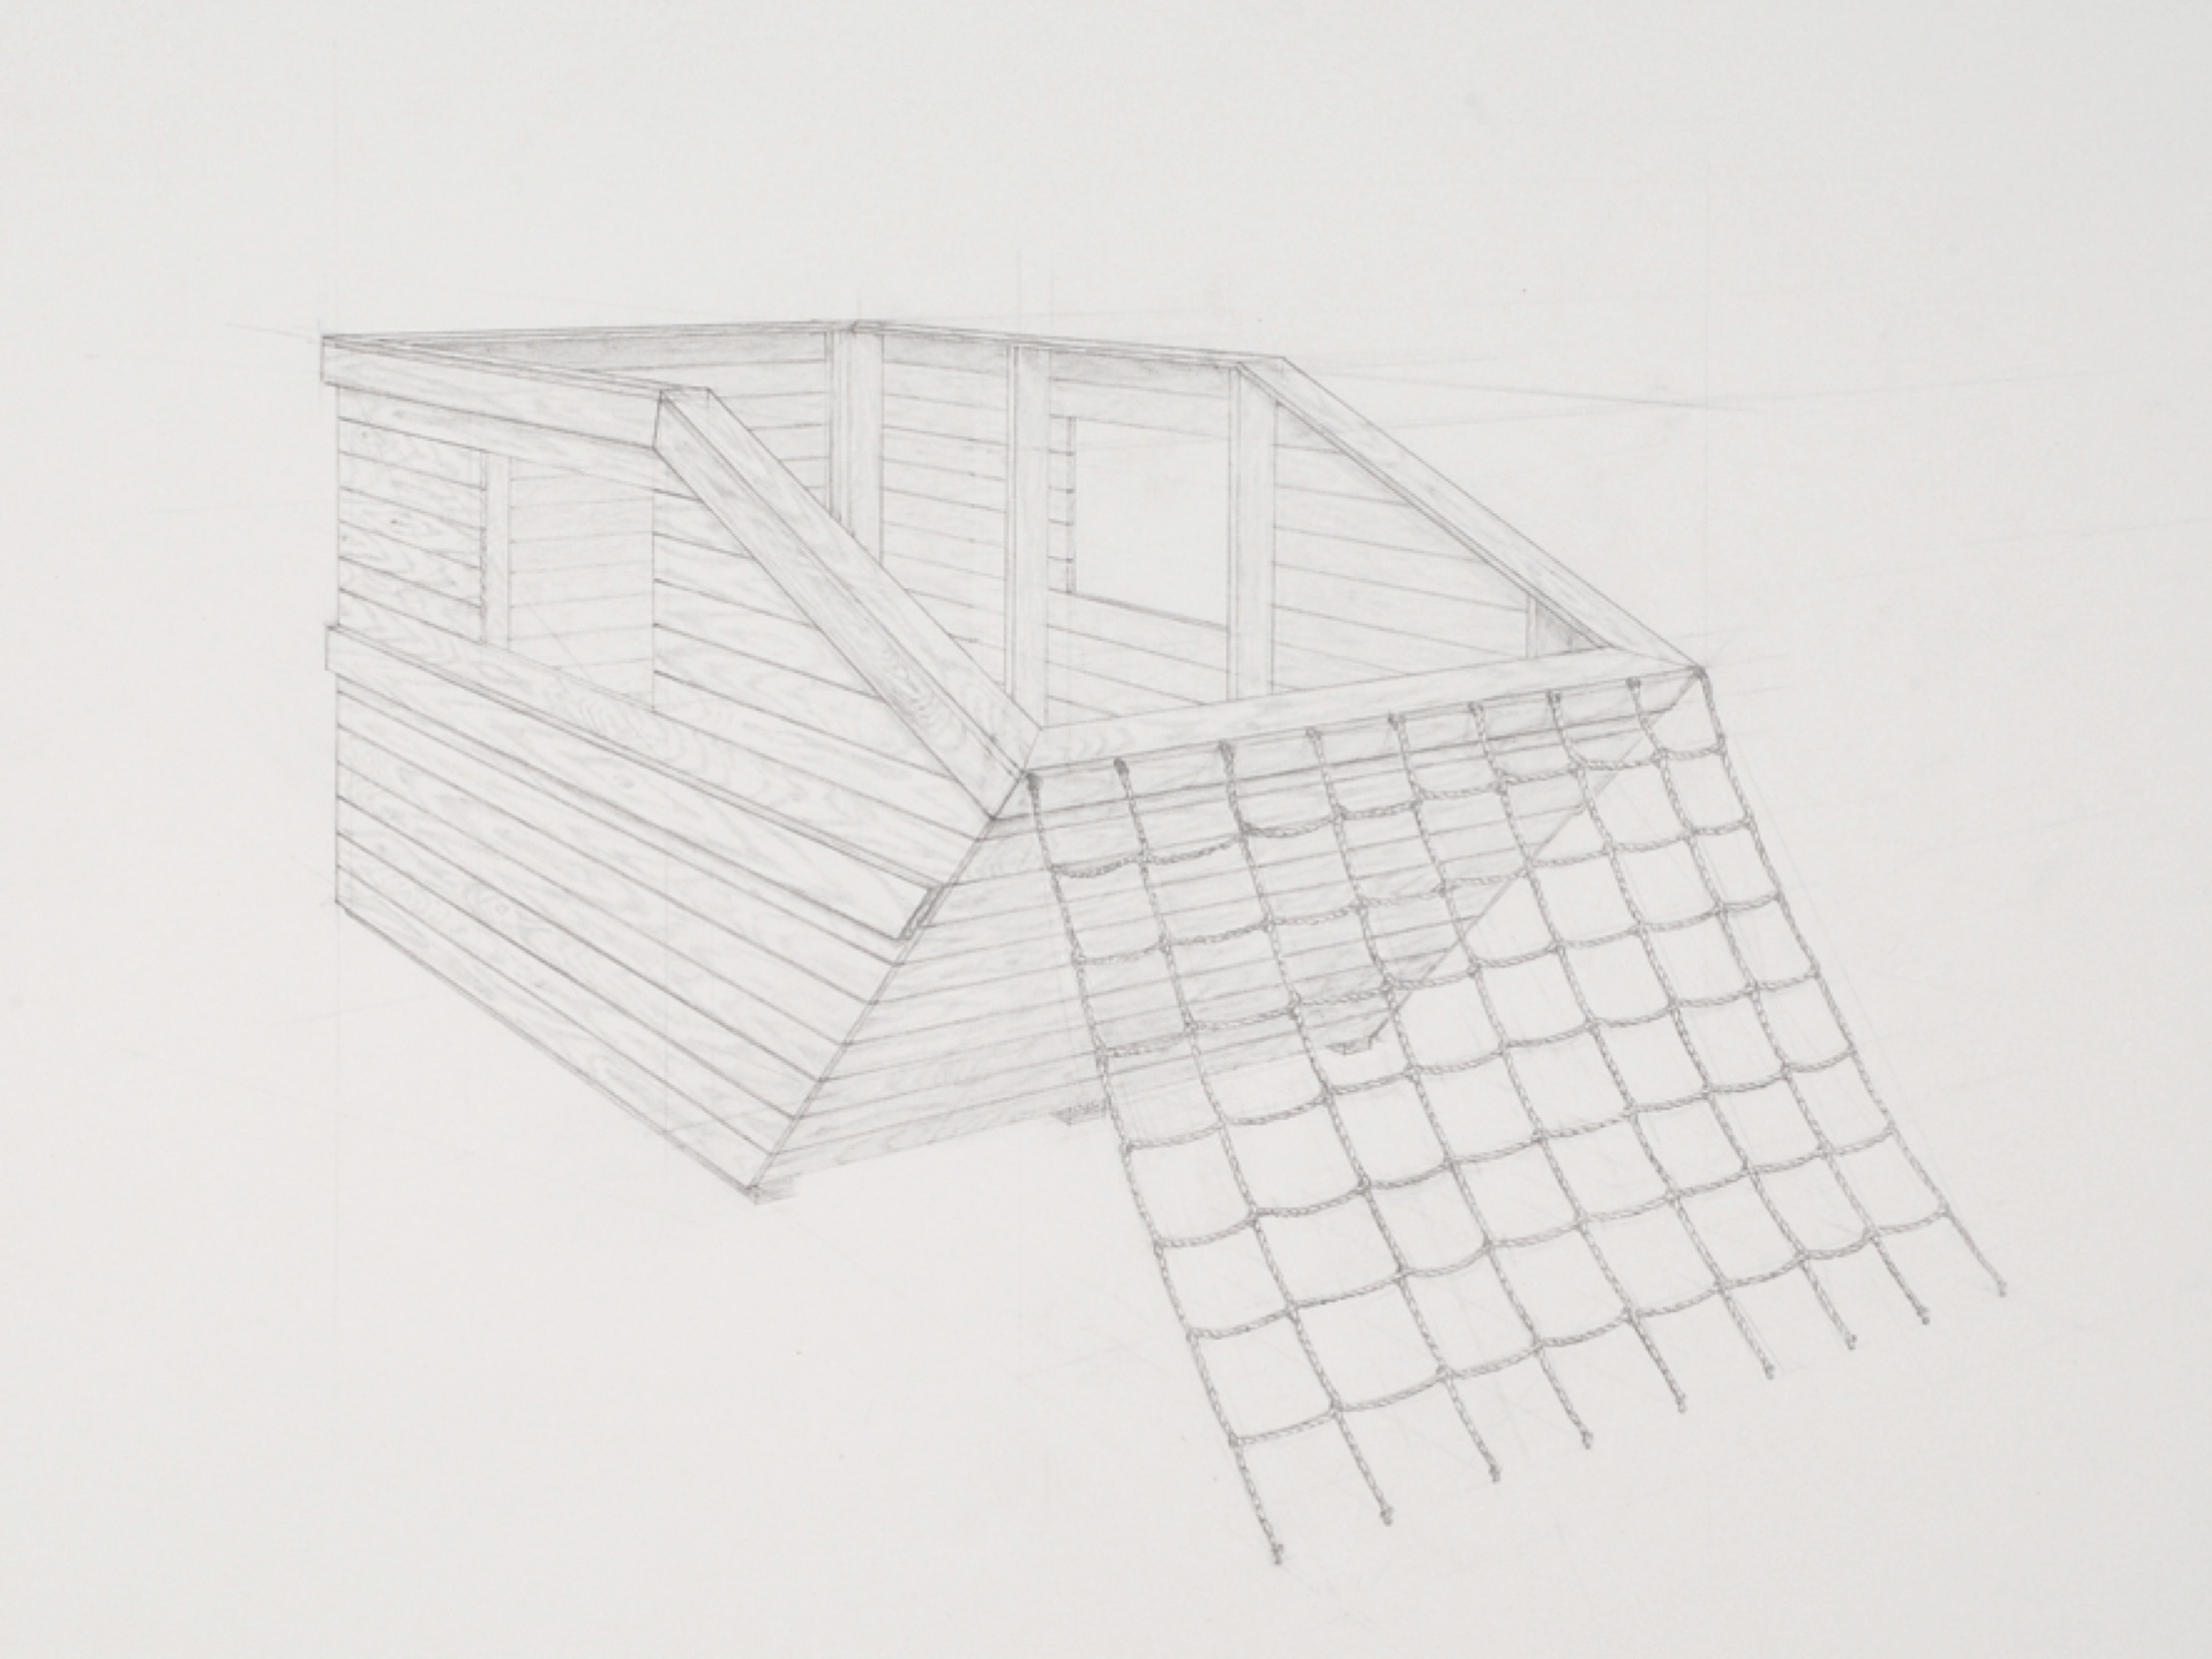 Copy of Dumpster 2 (detail) / graphite on paper / 22 x 30""